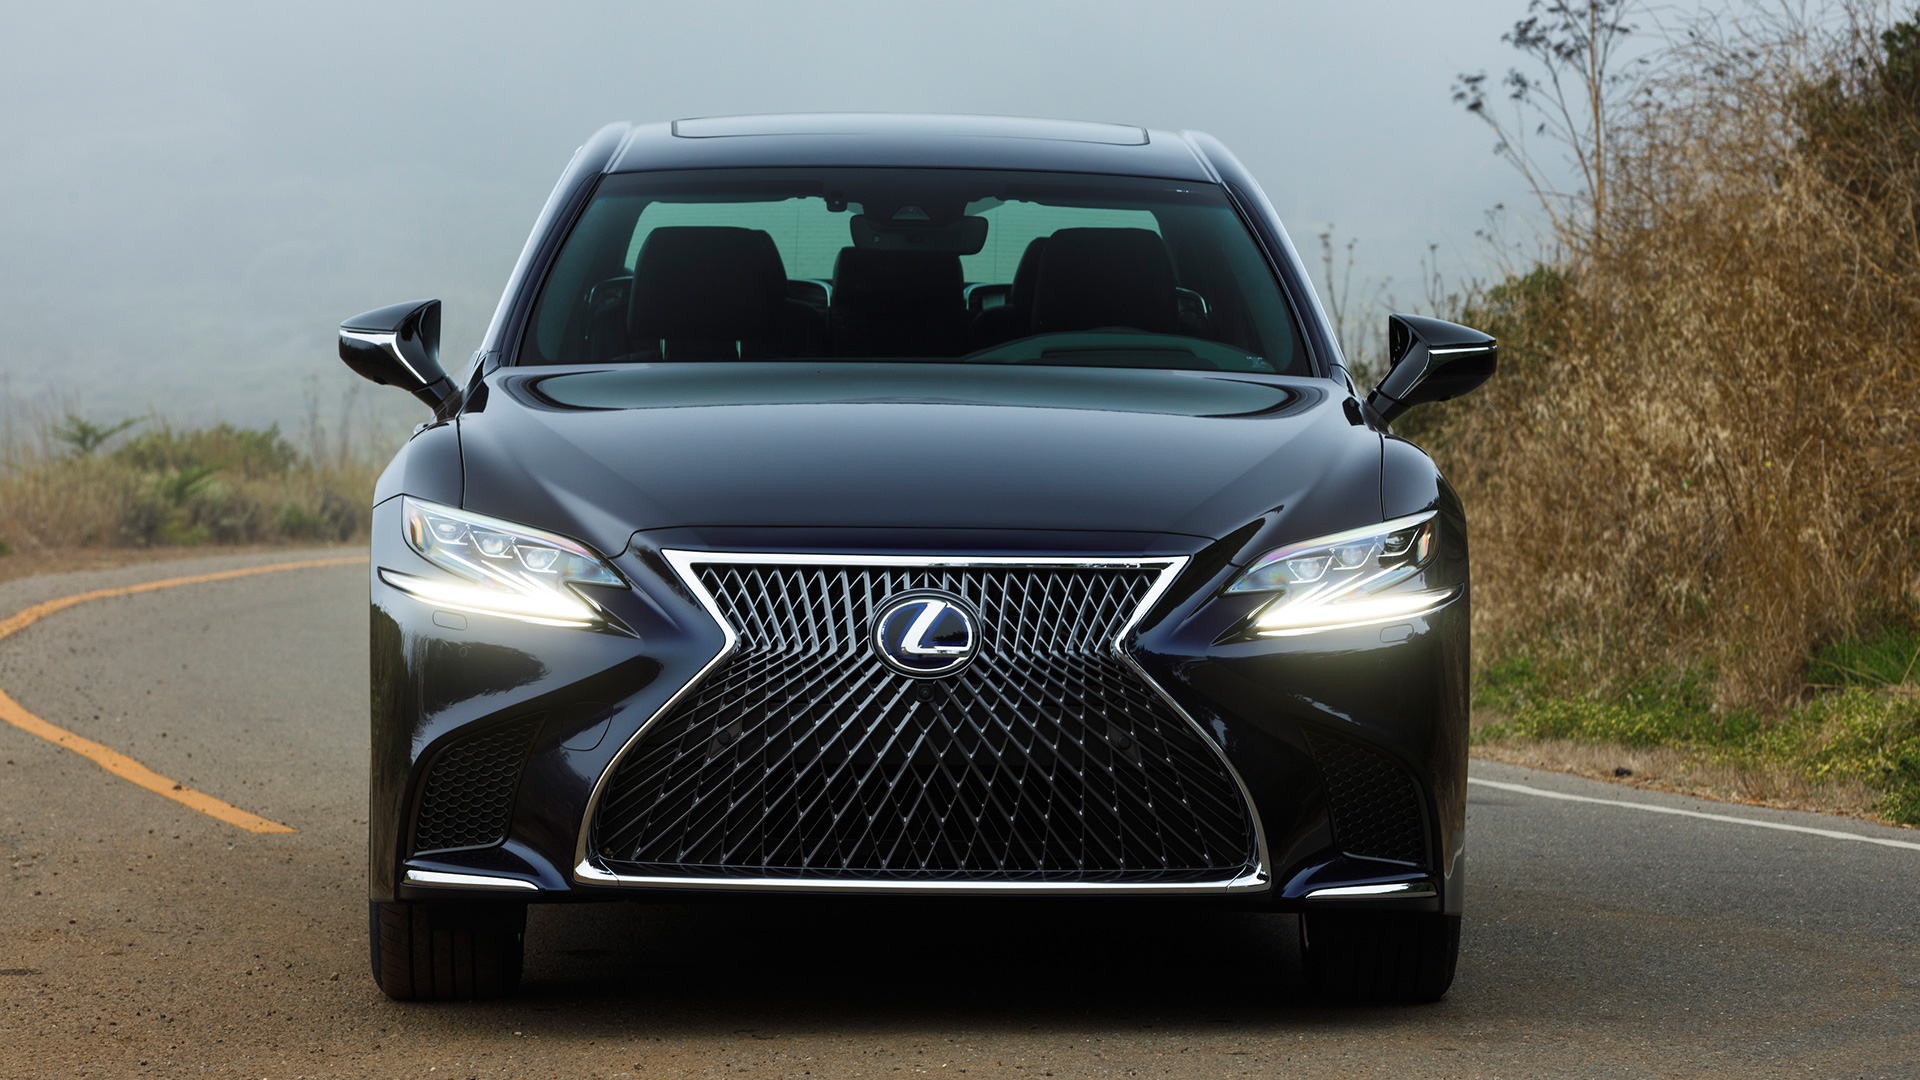 lexus ls 500h 2018 price mileage reviews specification gallery overdrive. Black Bedroom Furniture Sets. Home Design Ideas